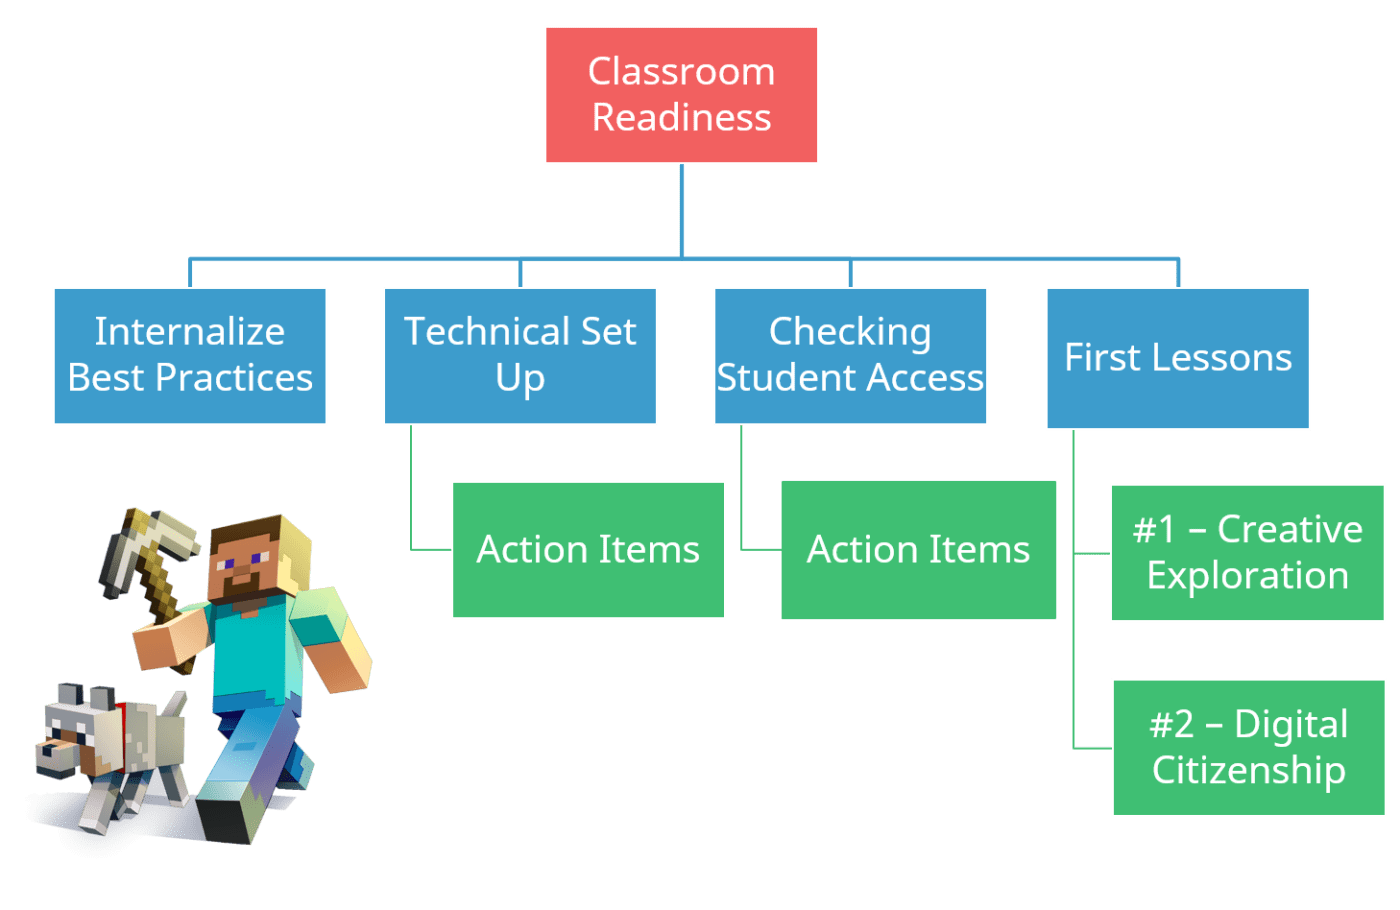 Structure diagram: Classroom readiness is divided into four components: internalize best practices, technical setup, checking student access, and 1st lessons. Internalize best practices has no components. Technical setup has one component: action items. Checking student access has one component: action items. First lessons has two components: number one - creative exploration and #2 - digital citizenship.